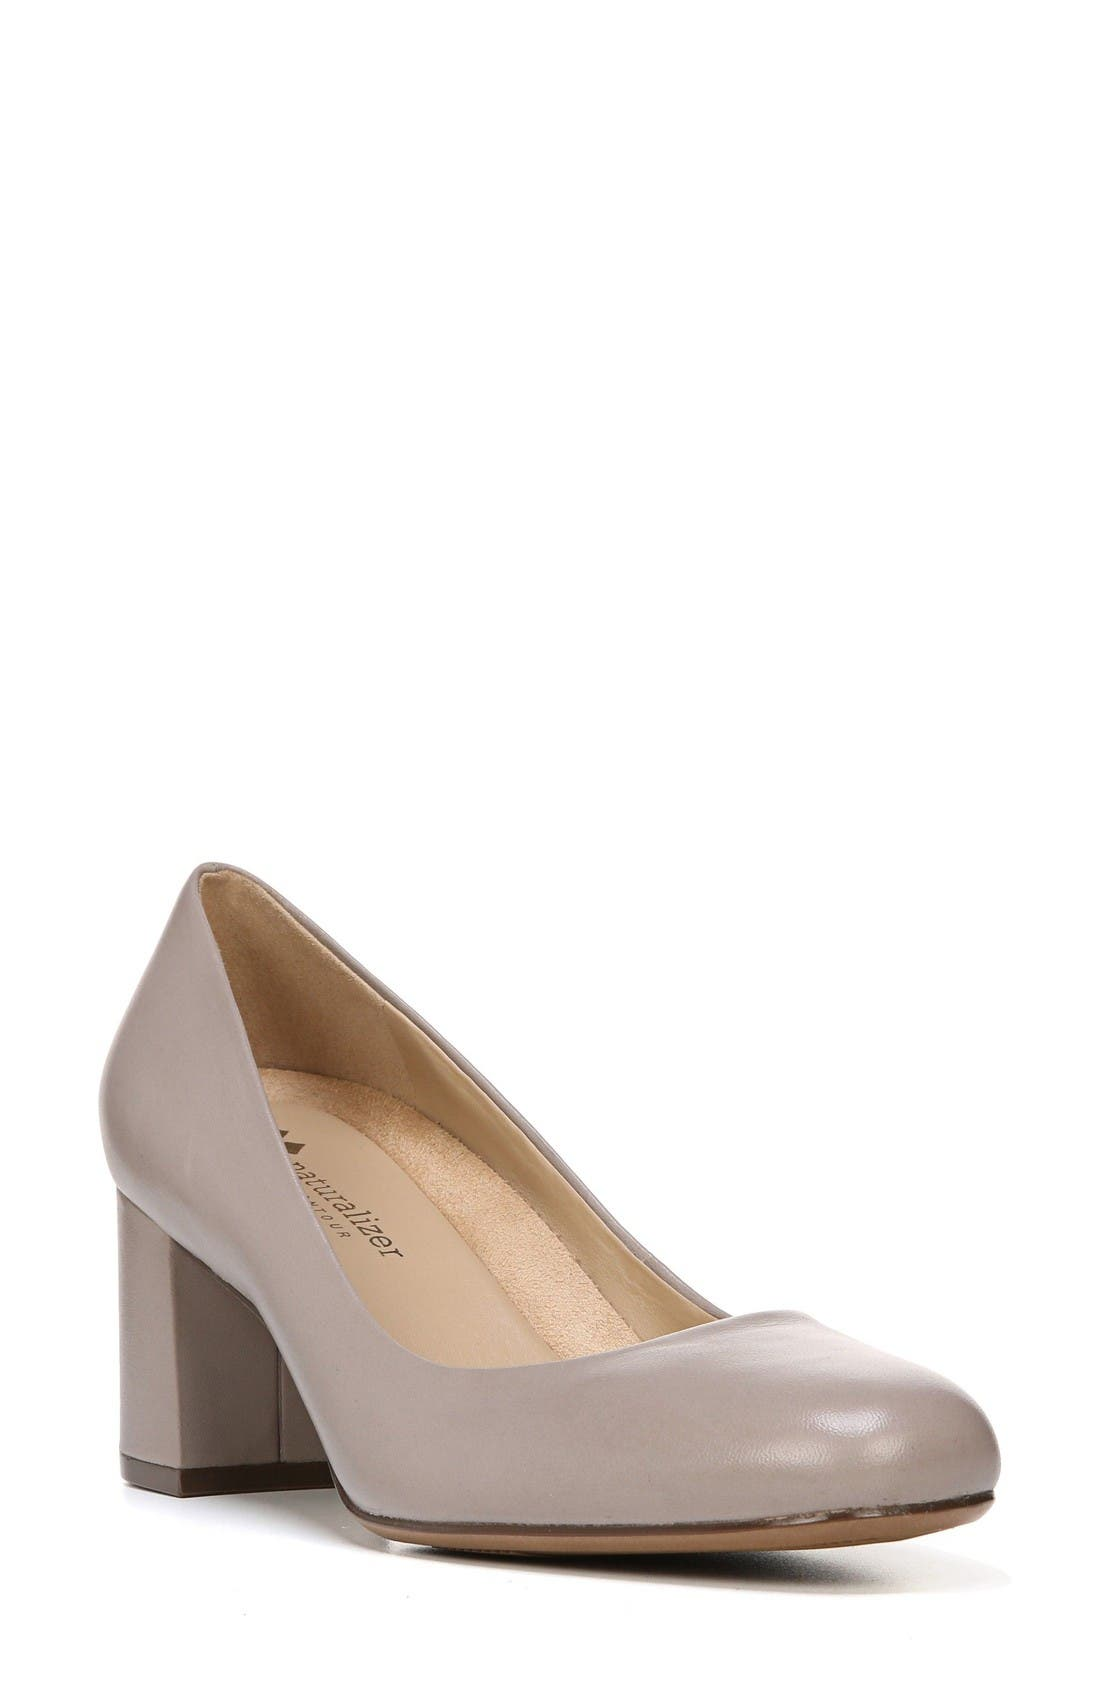 Whitney Pump,                             Main thumbnail 1, color,                             Dove Leather